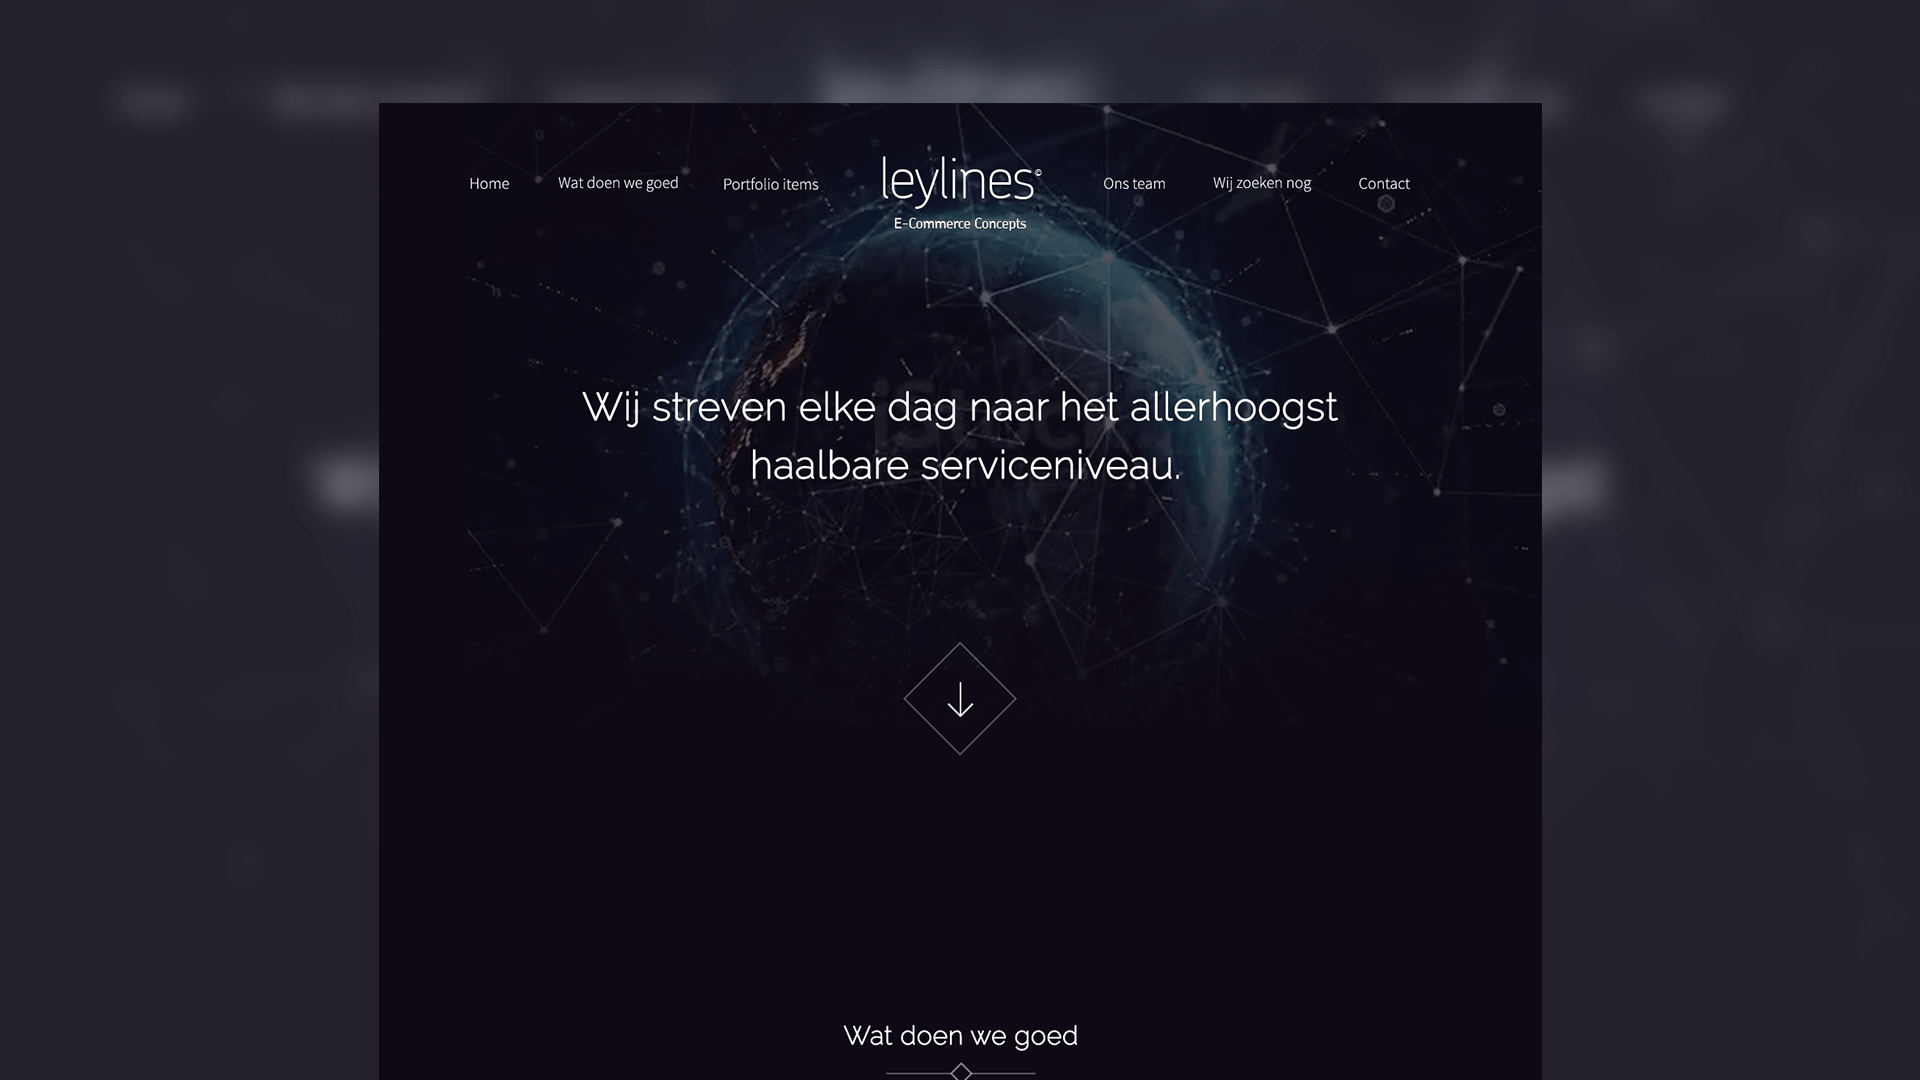 Leylines.nl website